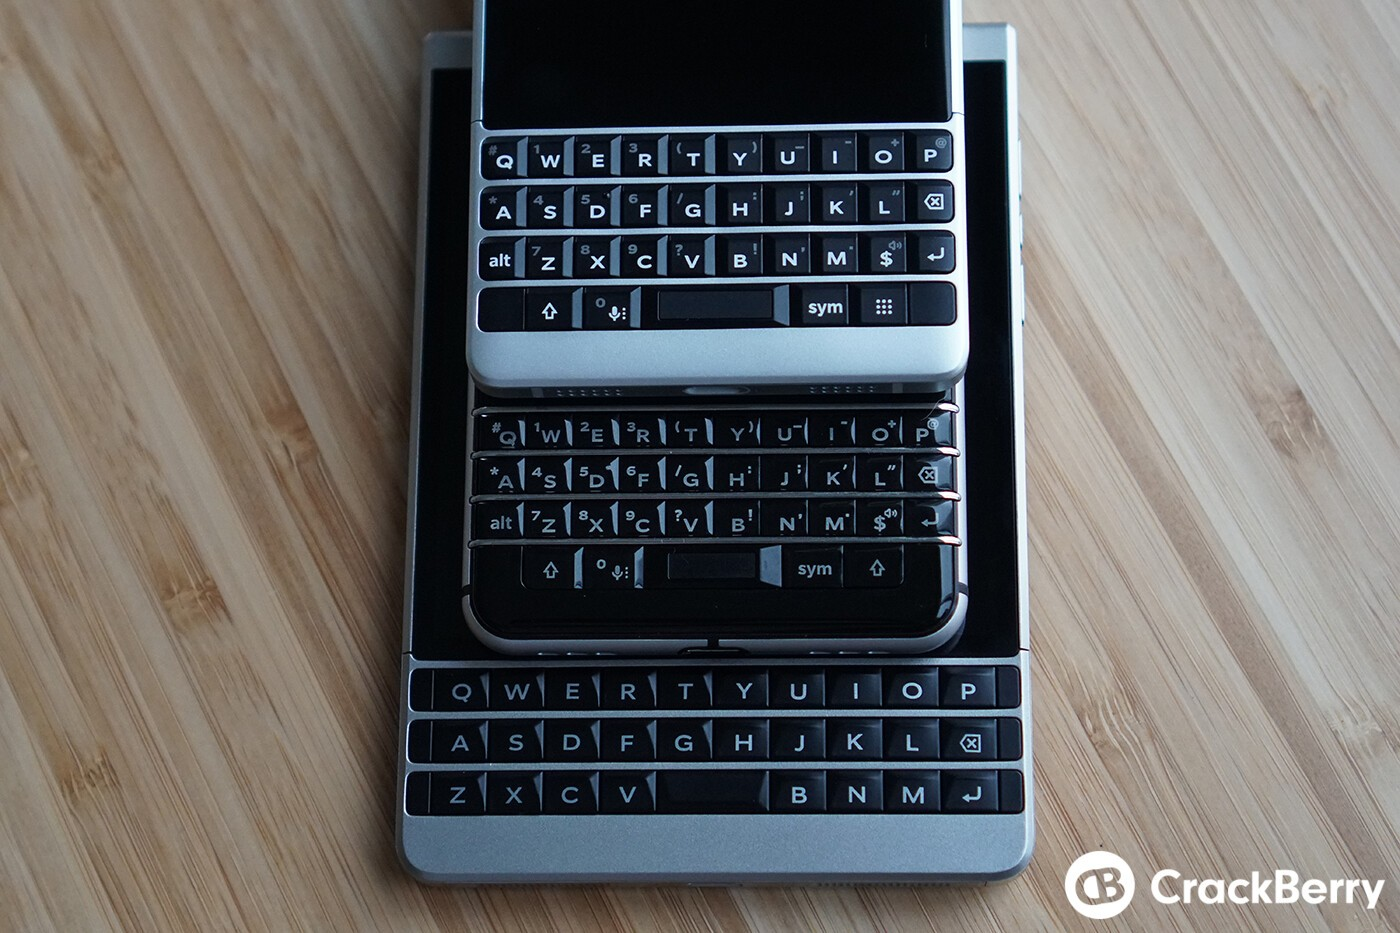 BlackBerry KEY2 Review - One of the best BlackBerry